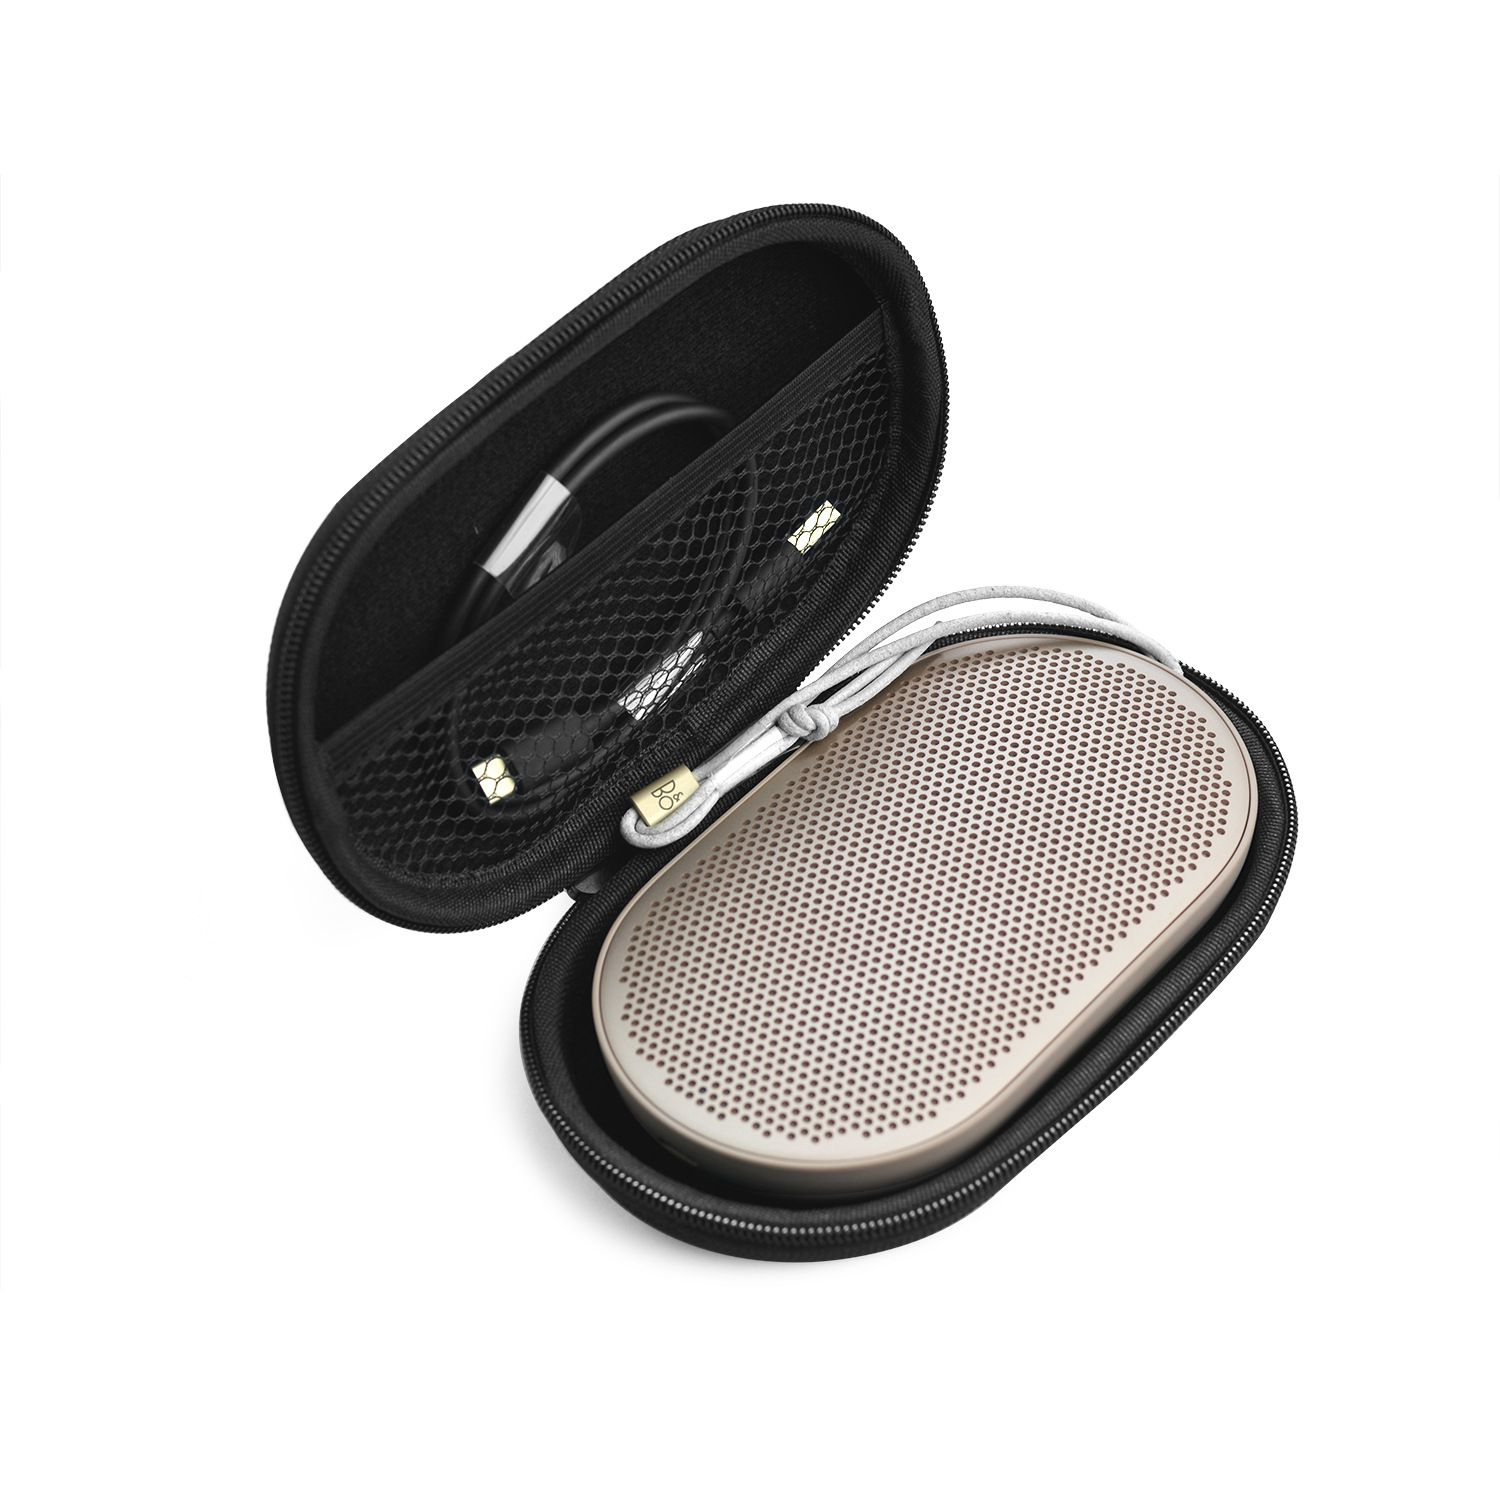 For Carry Protective Speaker Box Pouch Cover Bag Case For Bang & Olufsen Beoplay P2 Bluetooth SpeakerFor Carry Protective Speaker Box Pouch Cover Bag Case For Bang & Olufsen Beoplay P2 Bluetooth Speaker